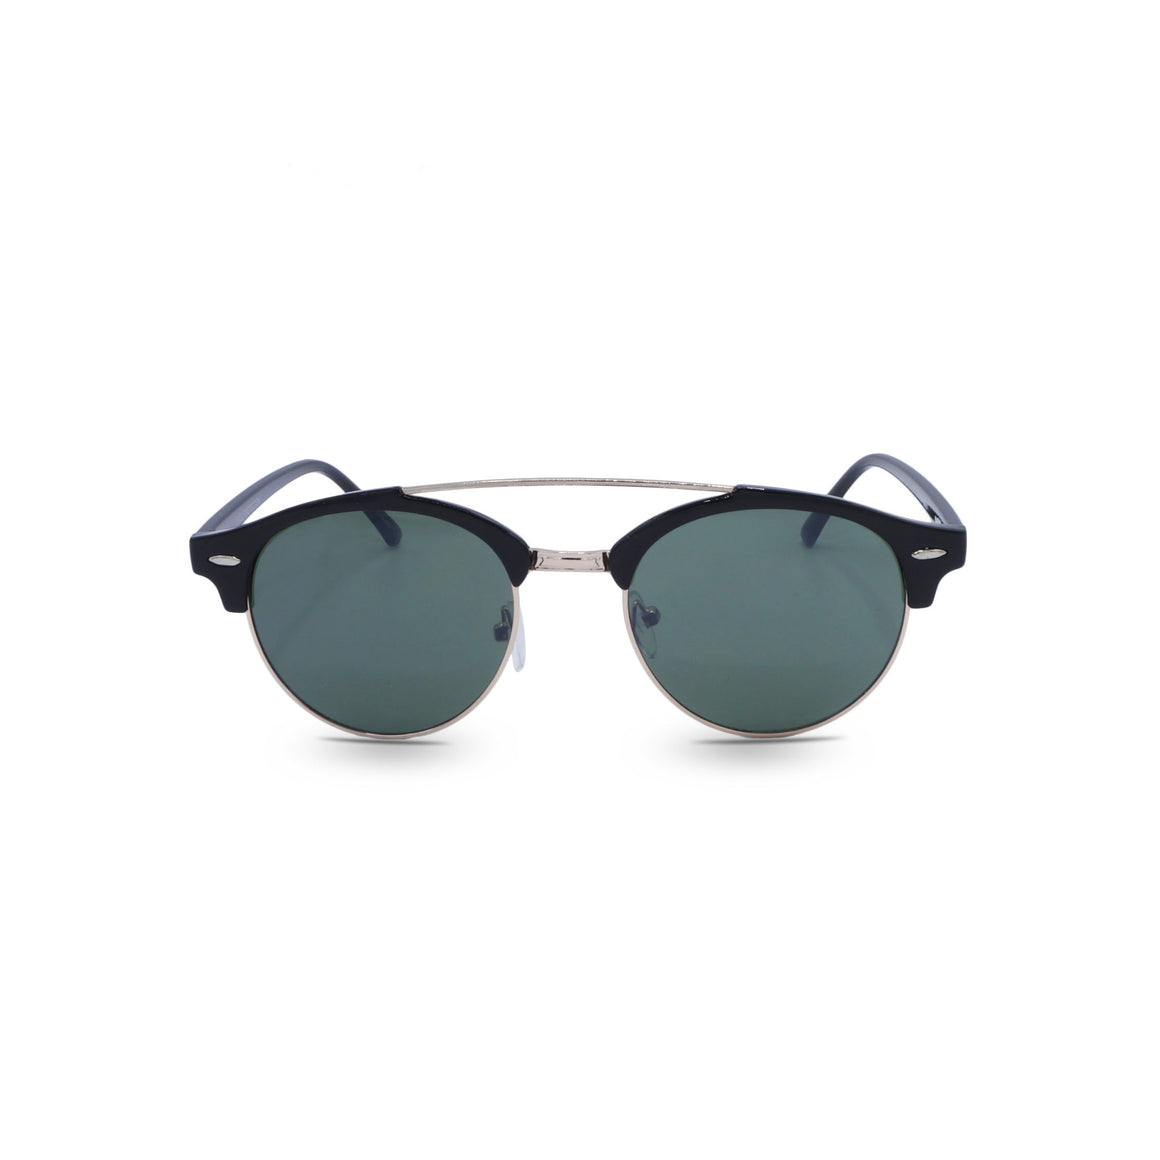 Retro Sunglasses Double Bridge in Brown Frame & Forest Green Lens